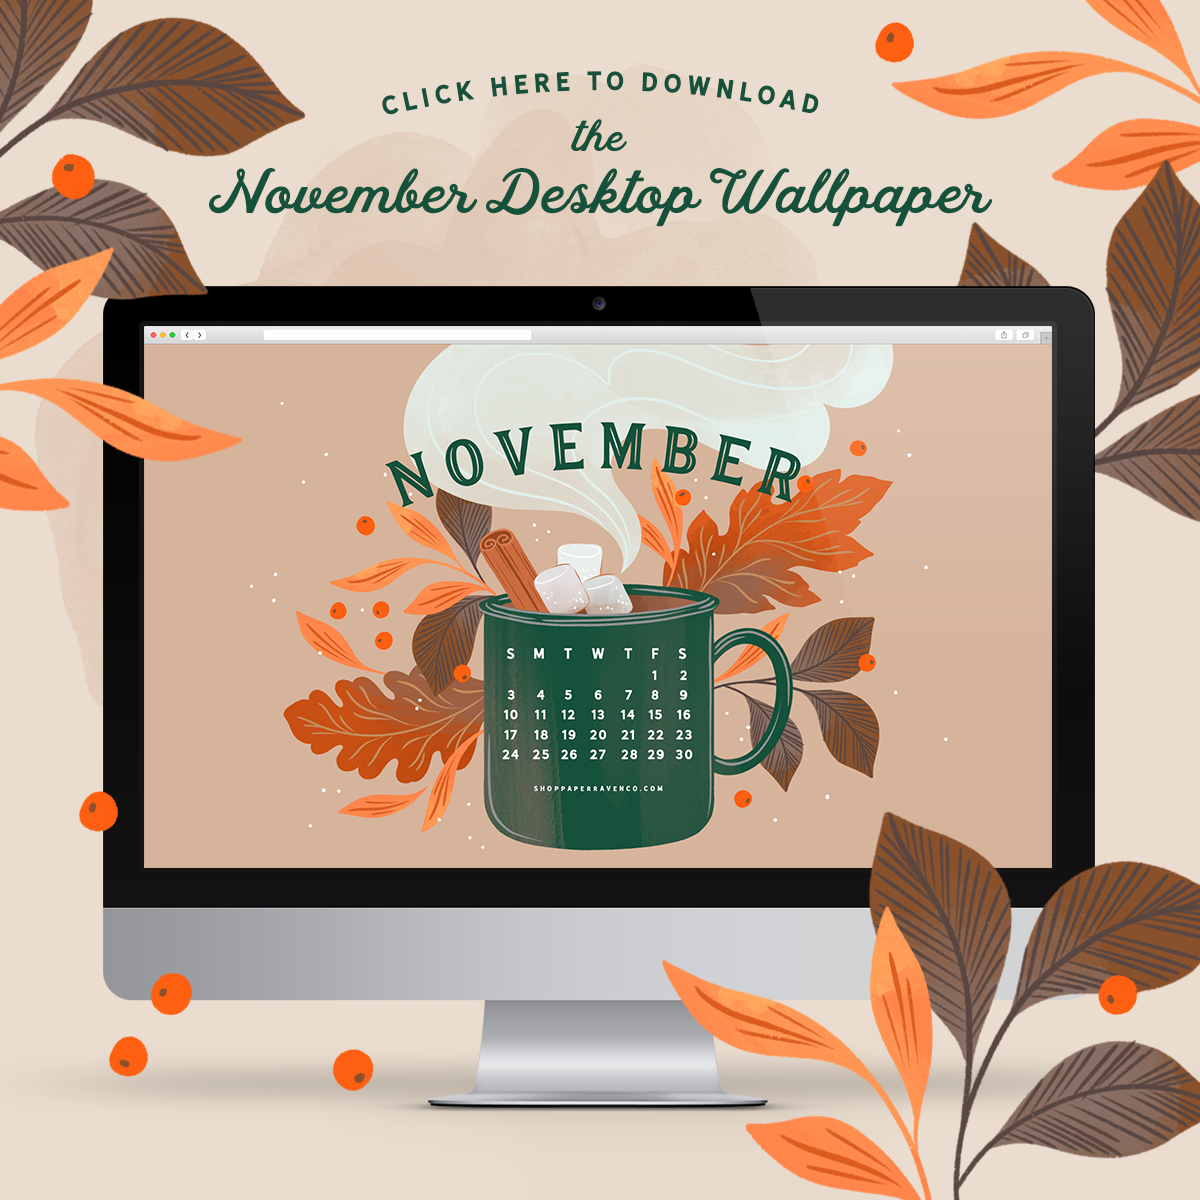 November 2019 Illustrated Desktop Wallpaper by Paper Raven Co. #desktopdownload #dressyourtech